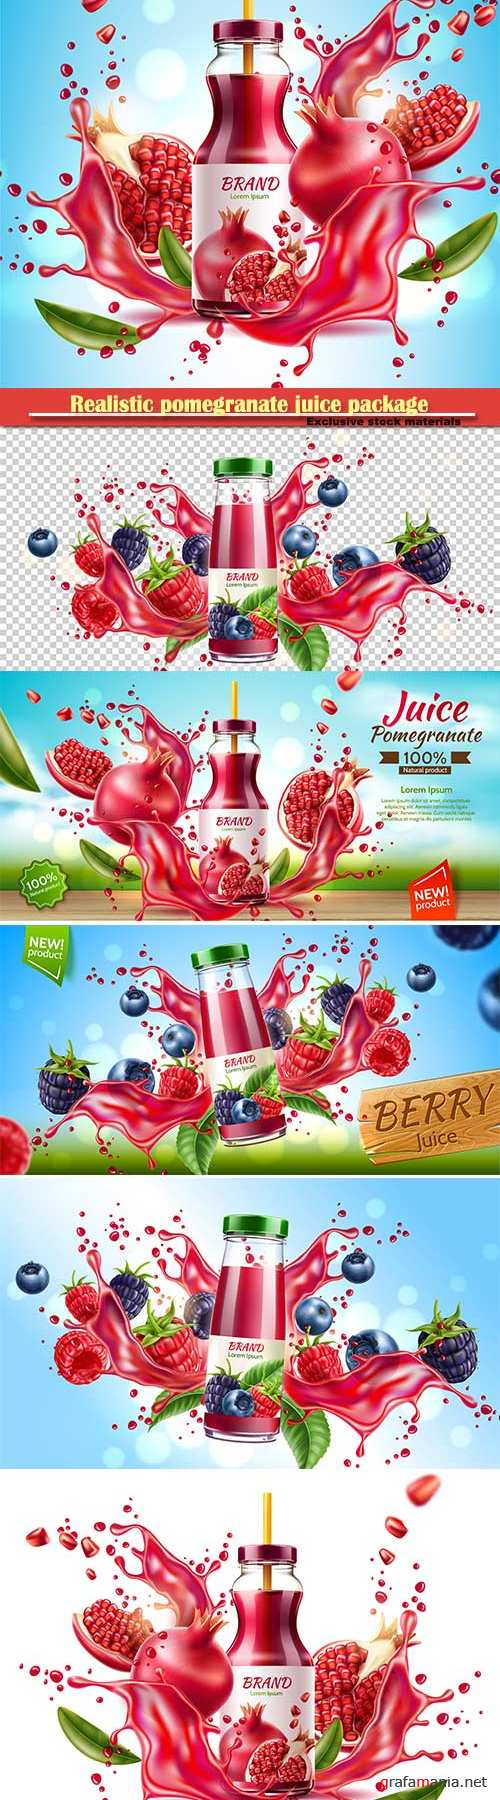 Realistic pomegranate juice package advertising design